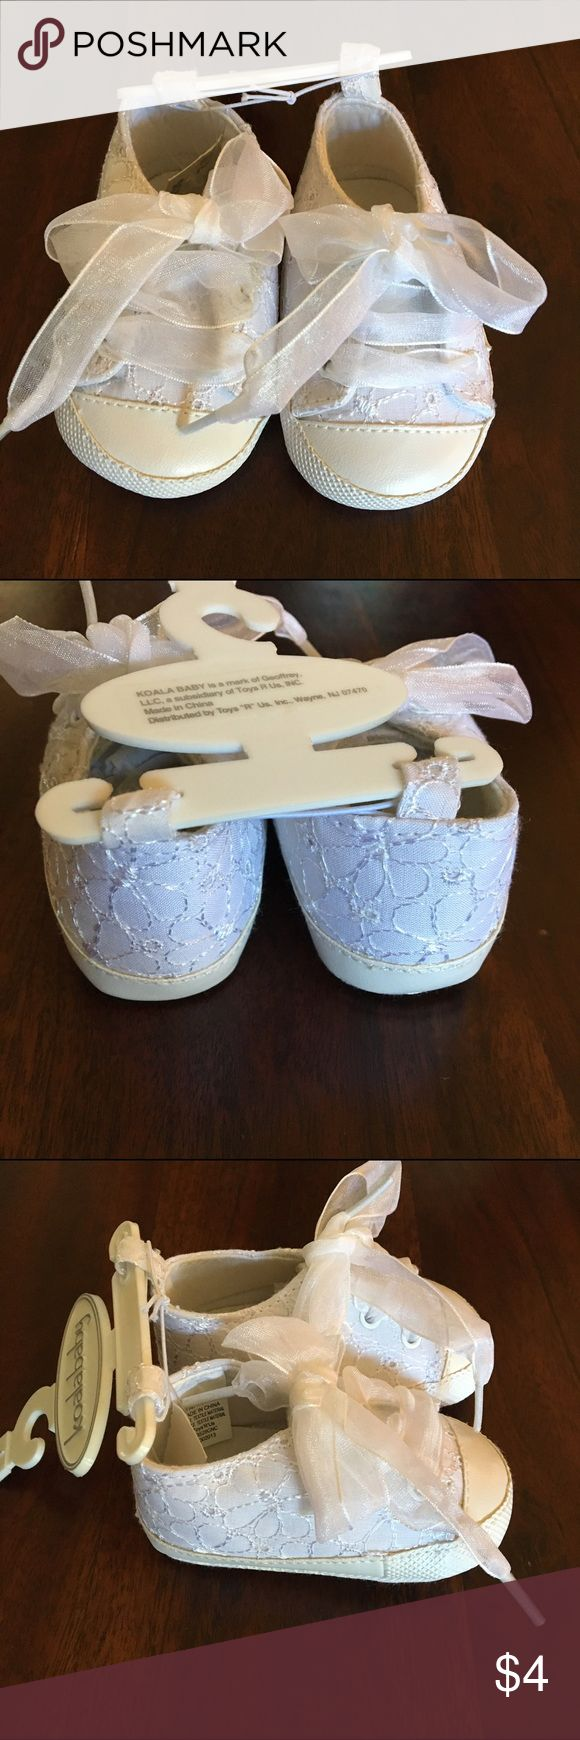 Koala baby girl shoes, size 1 NWT Koala baby girls shoes, size 1. White in color with a white stitched flower design & ribbon ties. Brand new with tags Koala Kids Shoes Baby & Walker